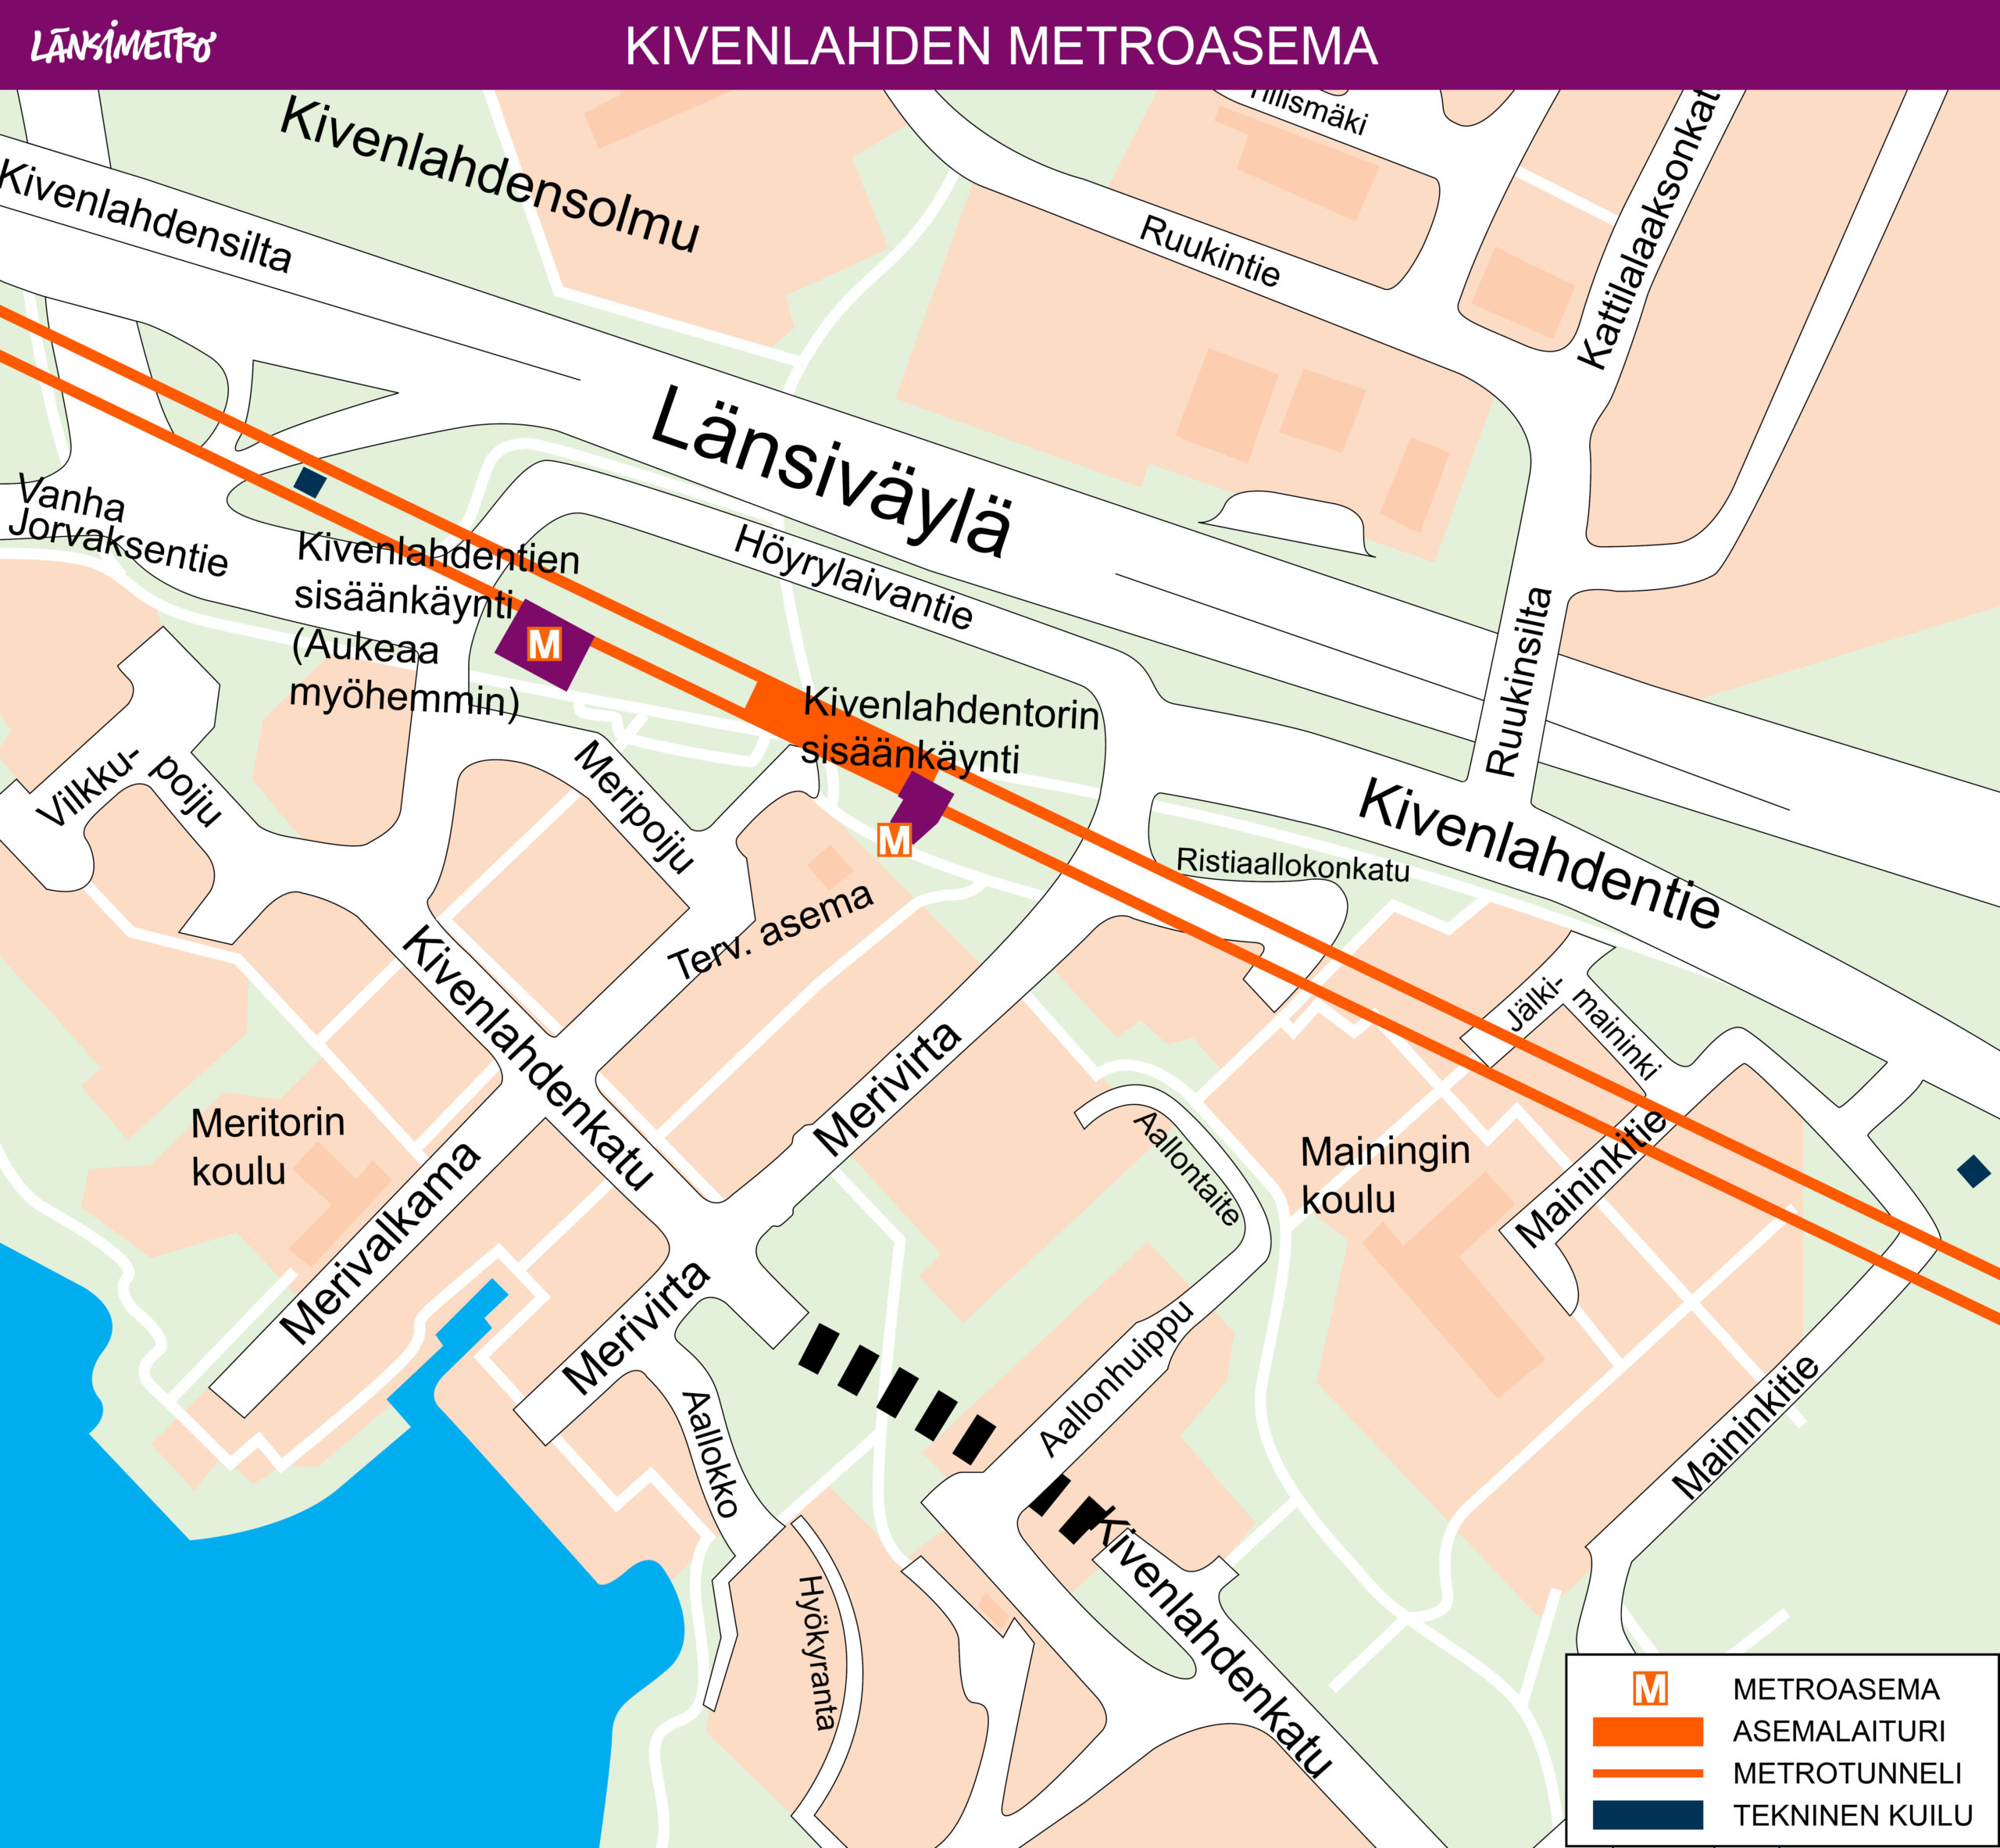 The Kivenlahti metro station has two entrances: the Kivenlahdentori entrance and the Kivenlahdentie entrance. The Kivenlahdentori entrance is located on the east side of the platform. The Kivenlahdentie entrance is located on the west side of the platform. When the metro service starts between Matinkylä and Kivenlahti in 2023, the Kivenlahdentie entrance will not be open to passengers due to other construction ongoing in the area. This entrance will be opened once construction in the area around the entrance is completed. In addition, the station features technical shafts.